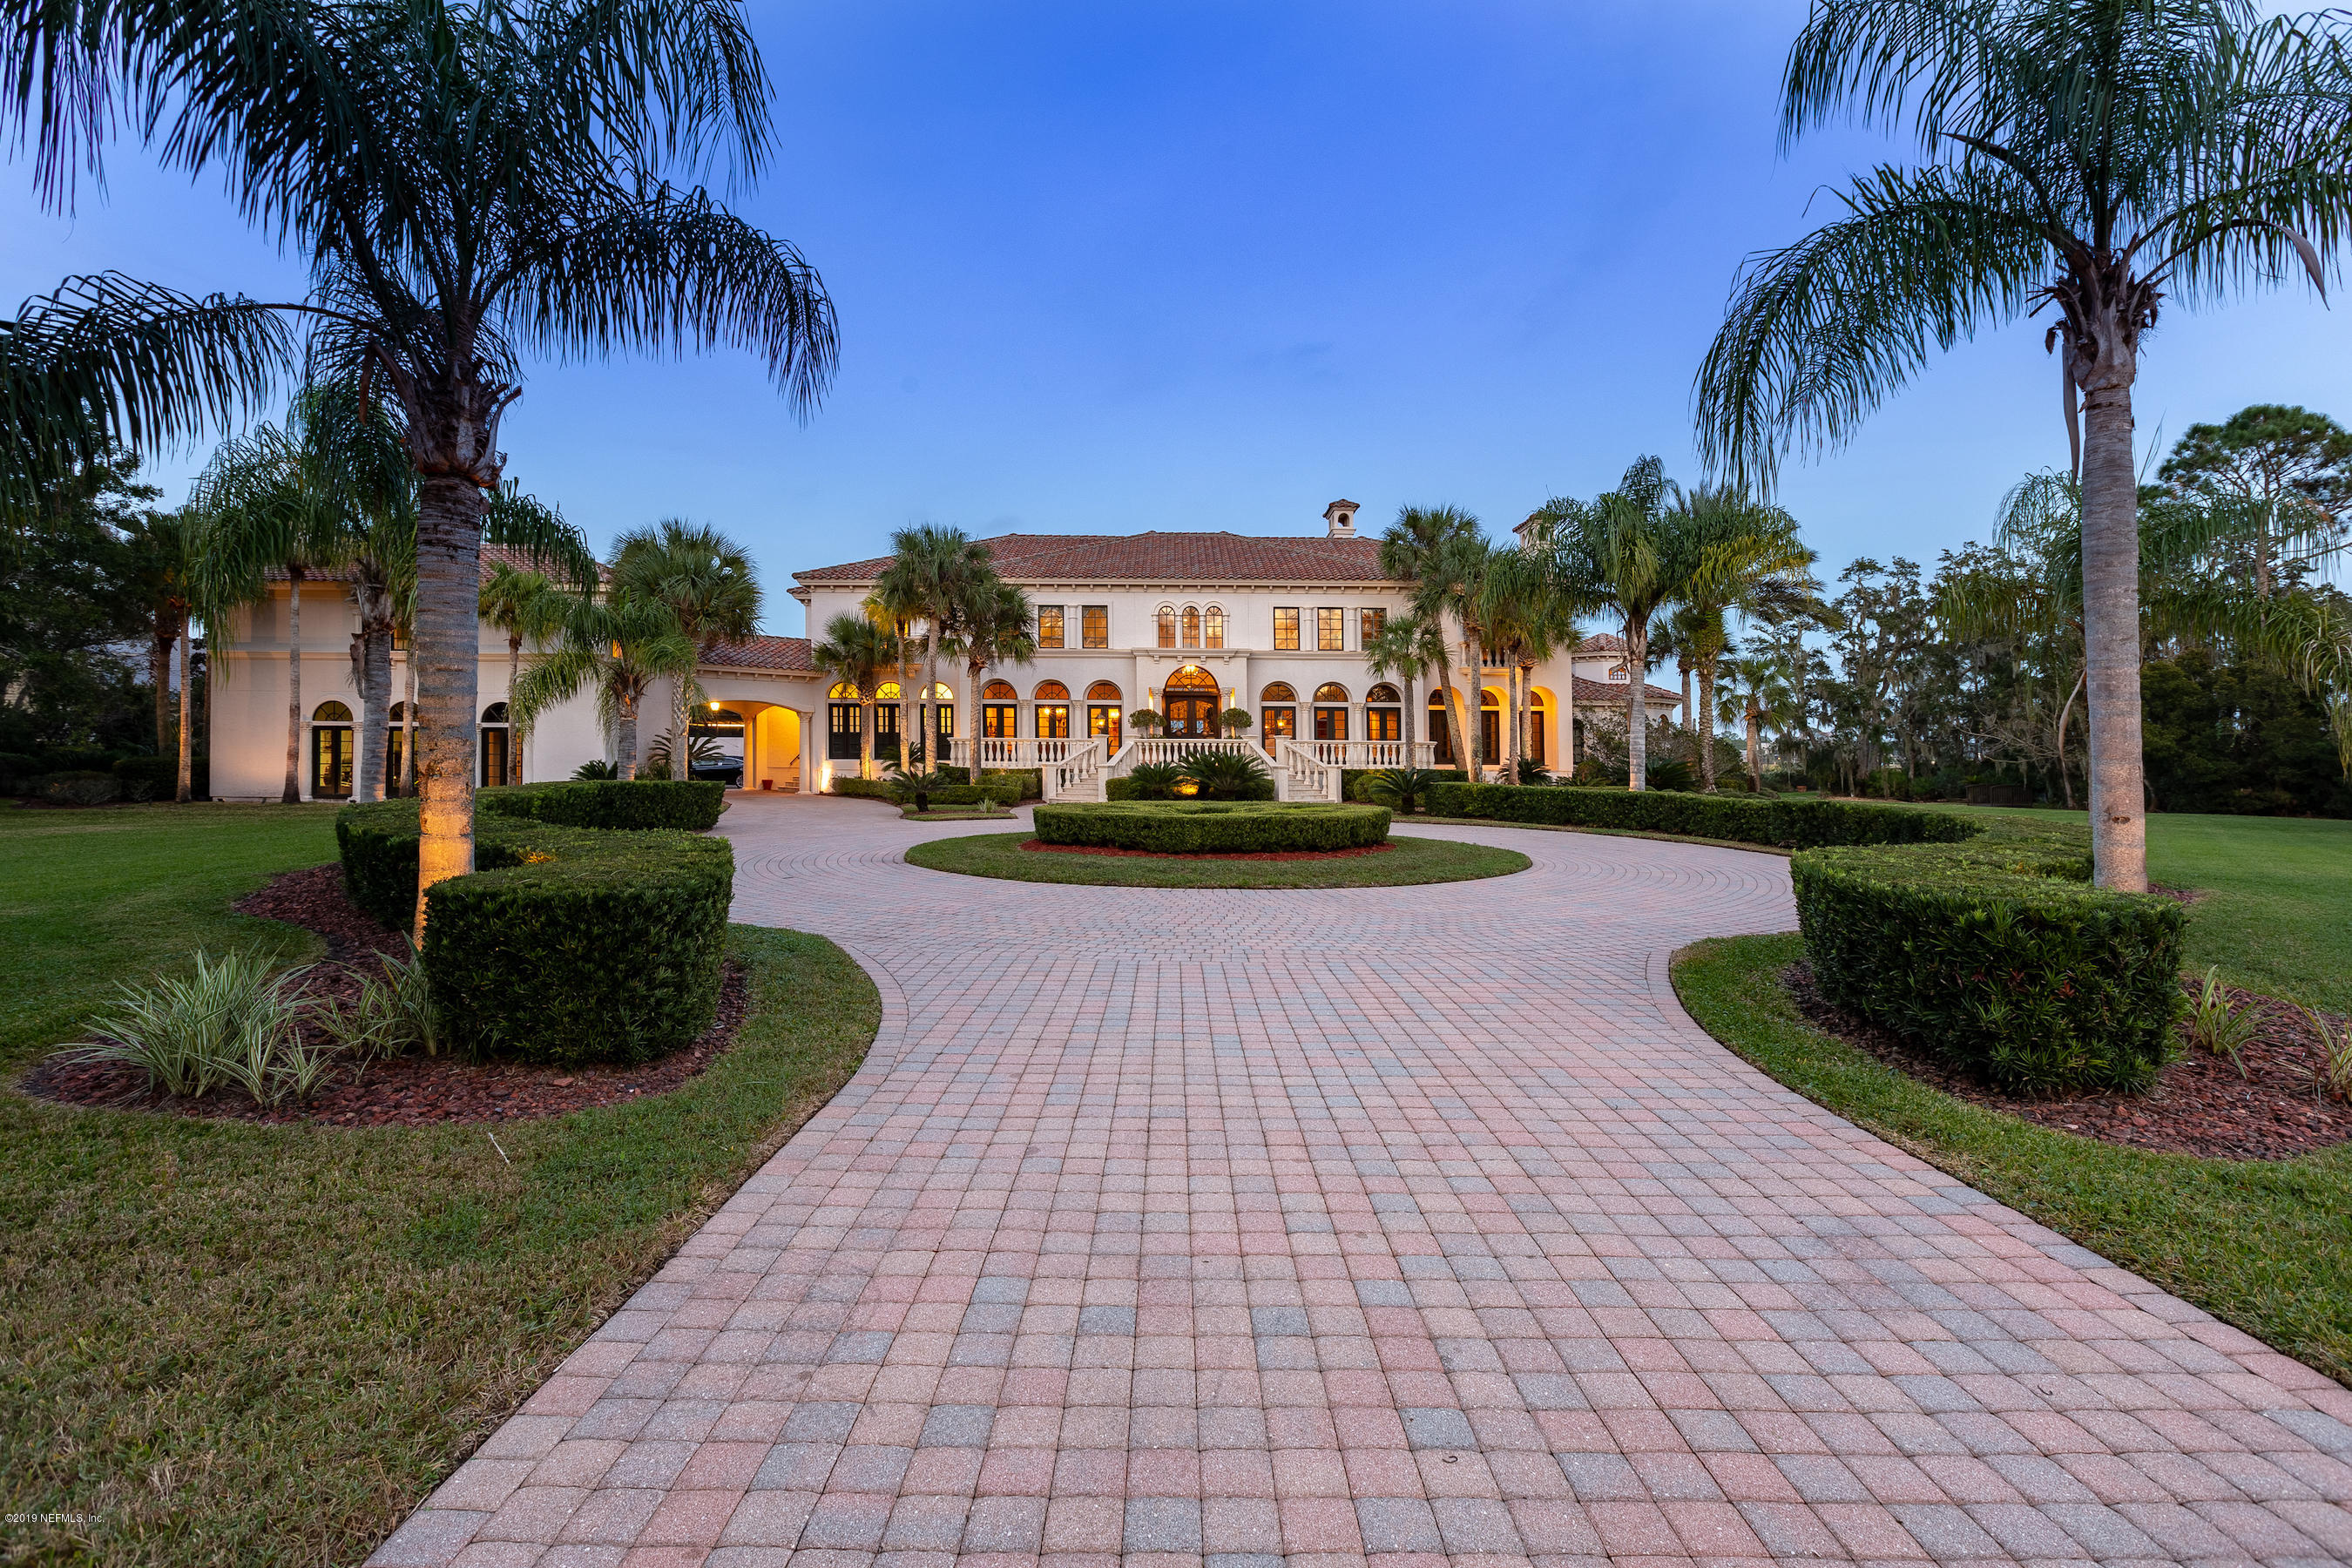 24756 HARBOUR VIEW, PONTE VEDRA BEACH, FLORIDA 32082, 6 Bedrooms Bedrooms, ,7 BathroomsBathrooms,Residential - single family,For sale,HARBOUR VIEW,986498